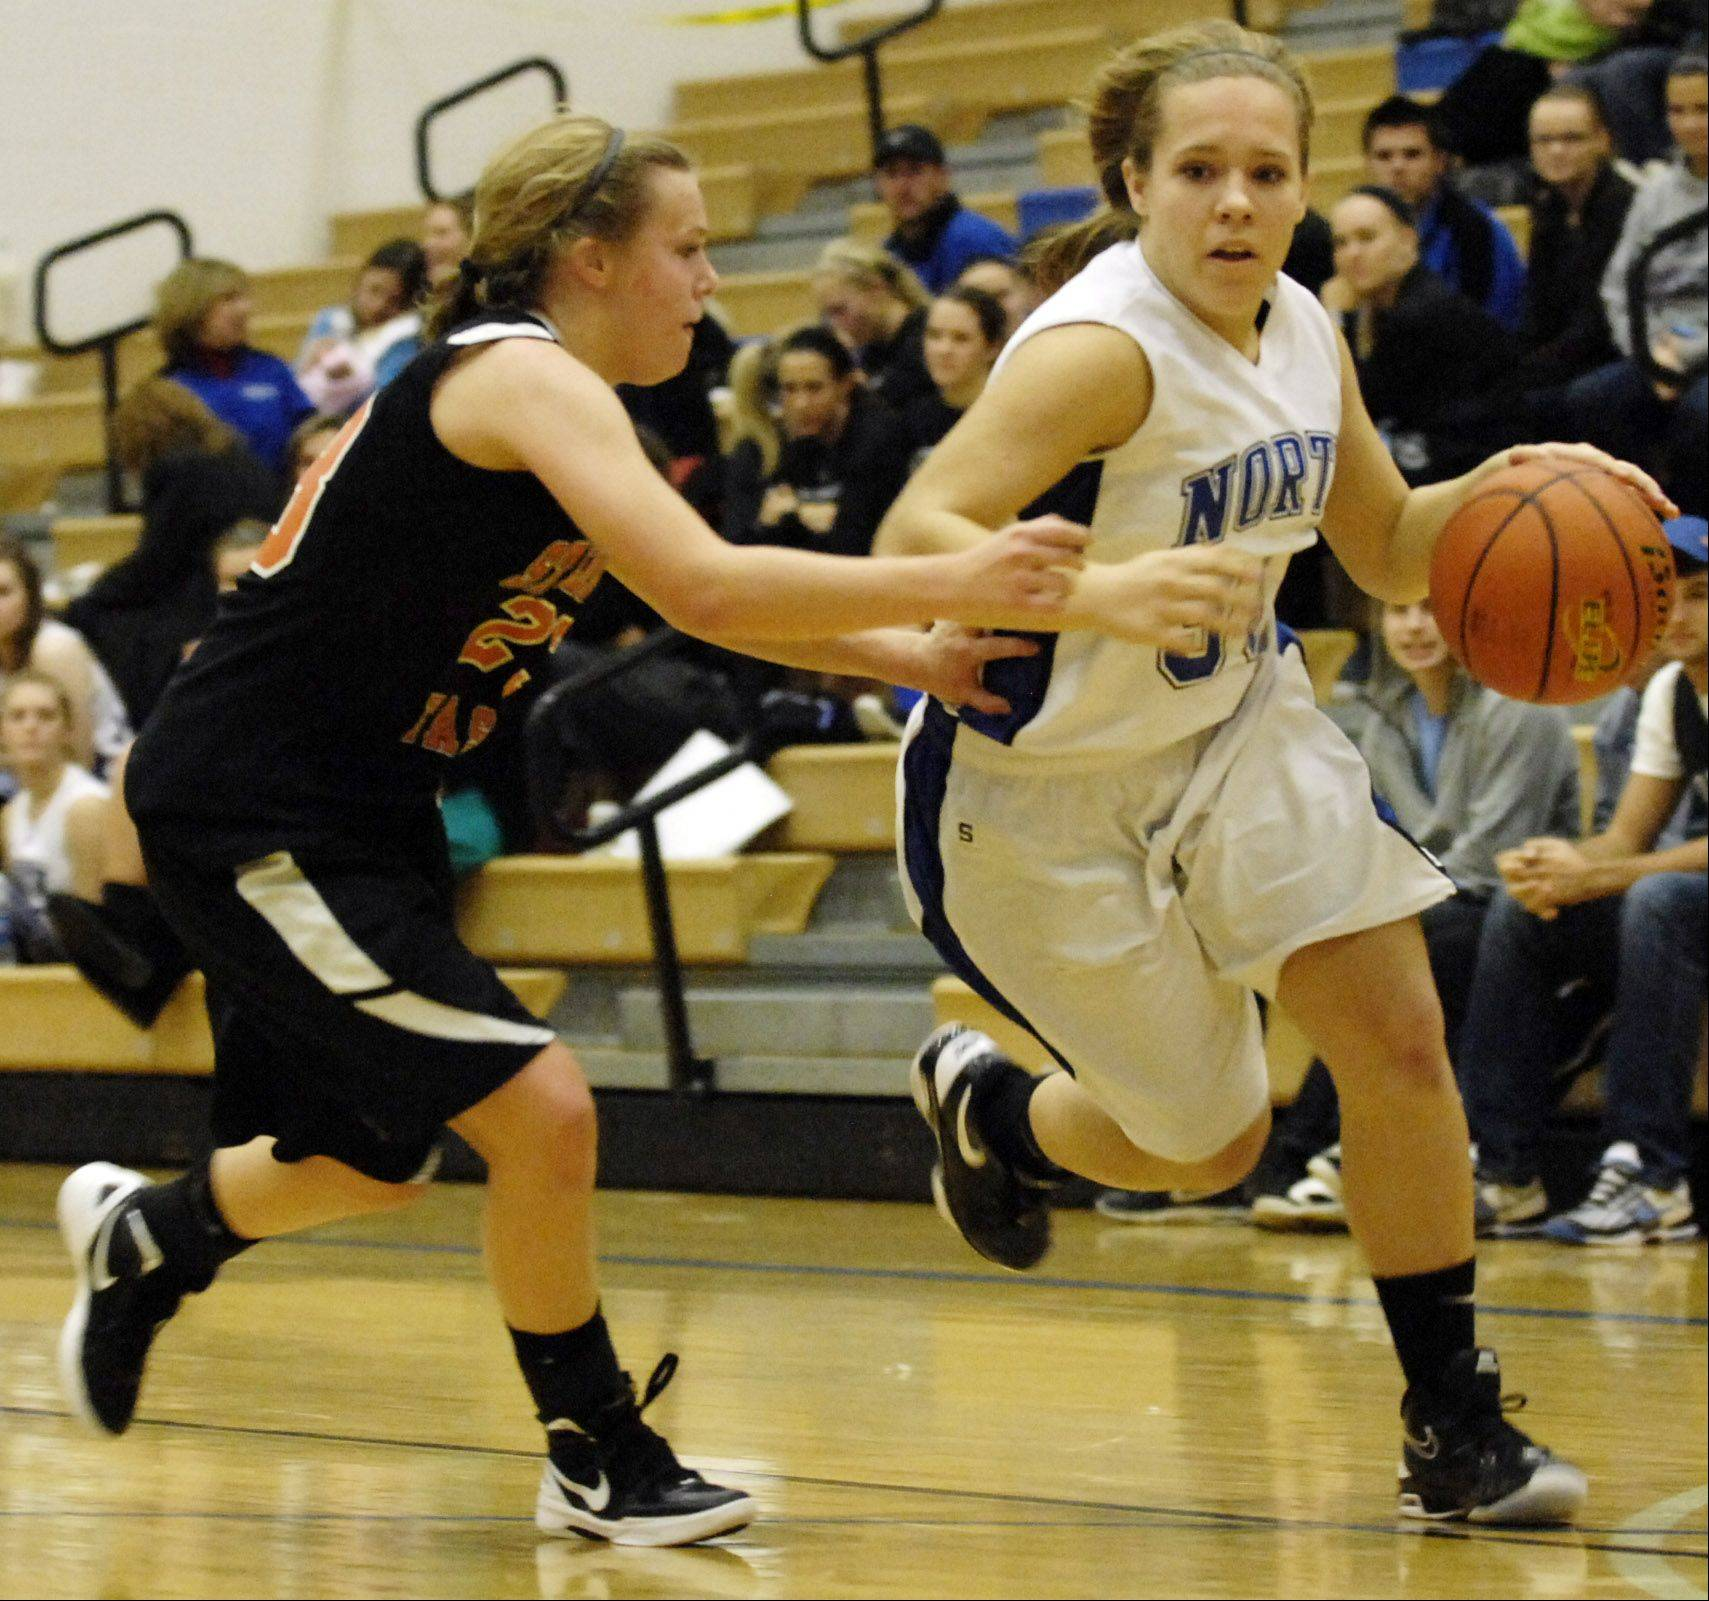 St. Charles North's Ava Tarka drives past St. Charles East's Amanda Hilton during their game Wednesday in St. Charles.